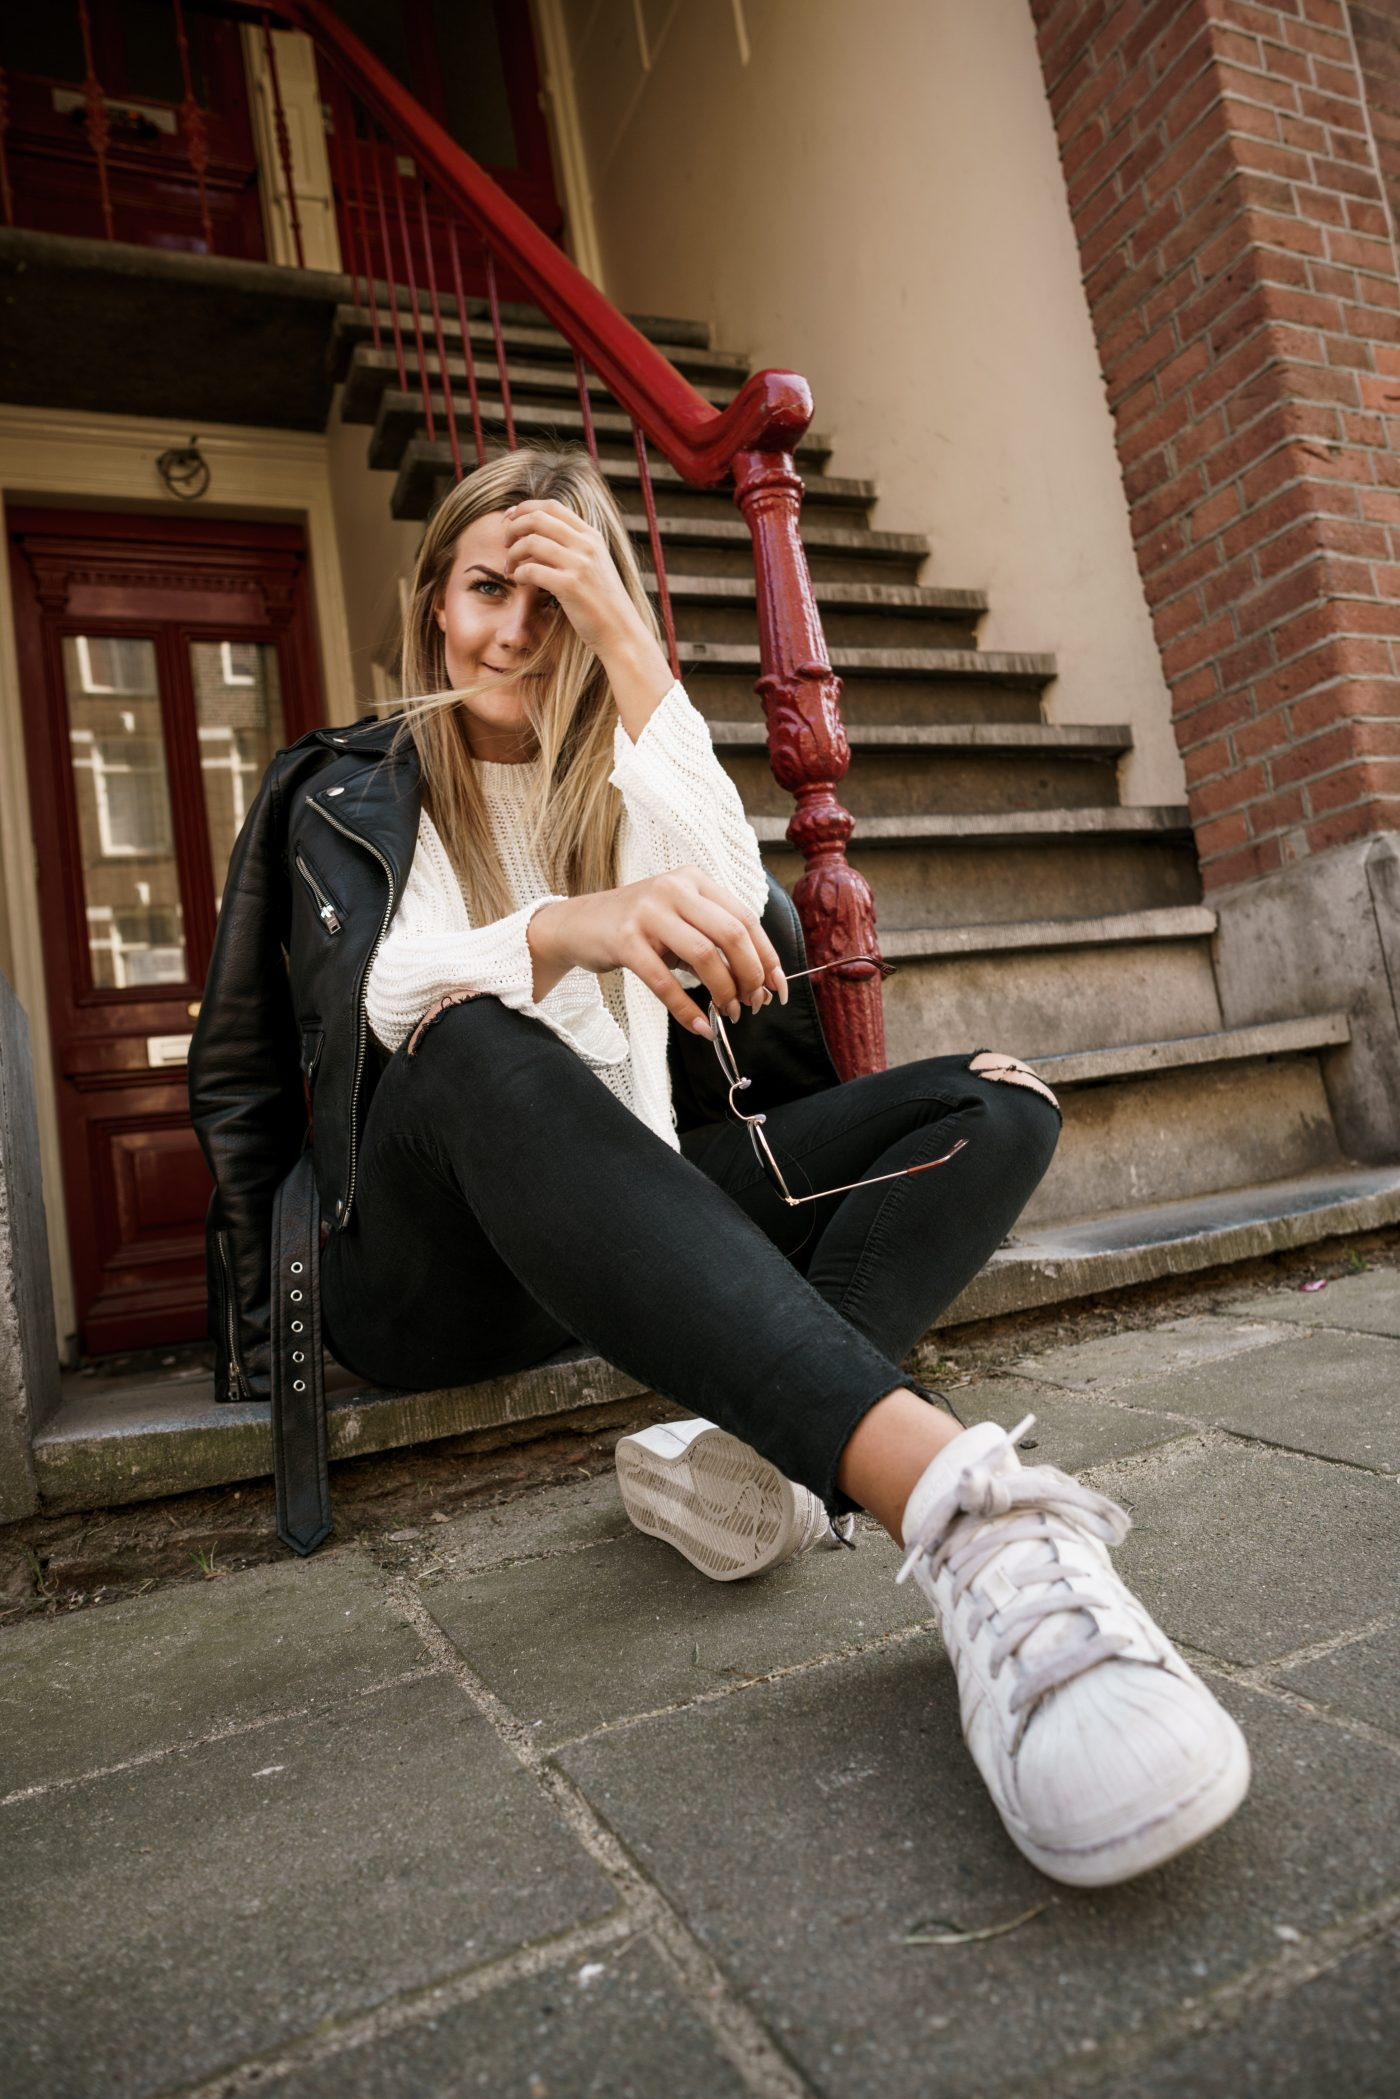 Portrait, Shoot, Amsterdam, Photos, Session, Lifestyle, Street, People, Photographer in Amsterdam